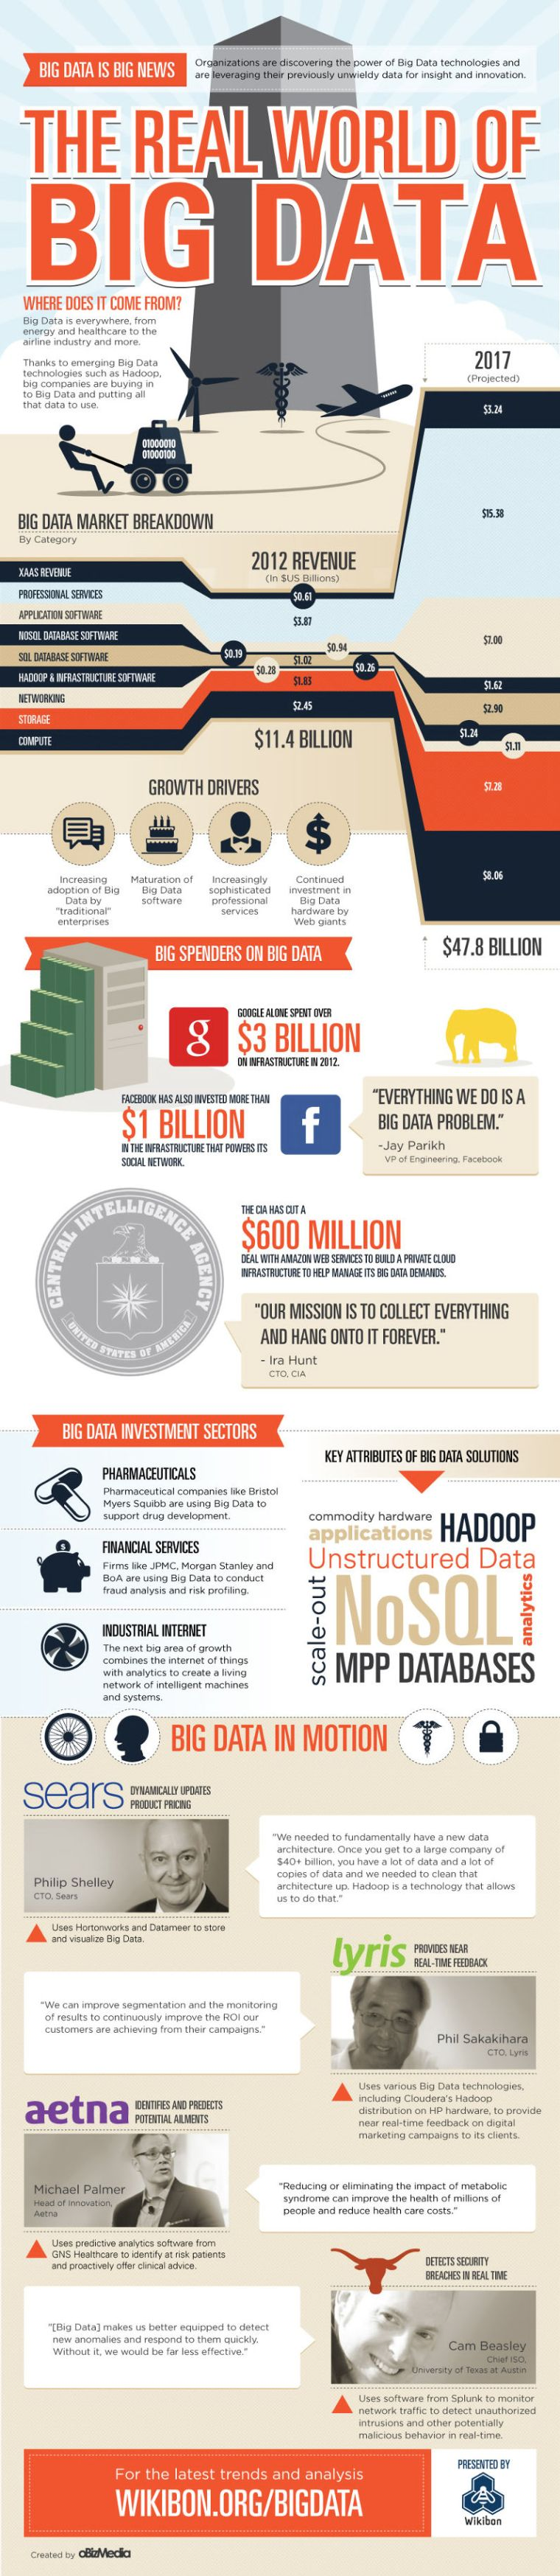 The world of big data infographic